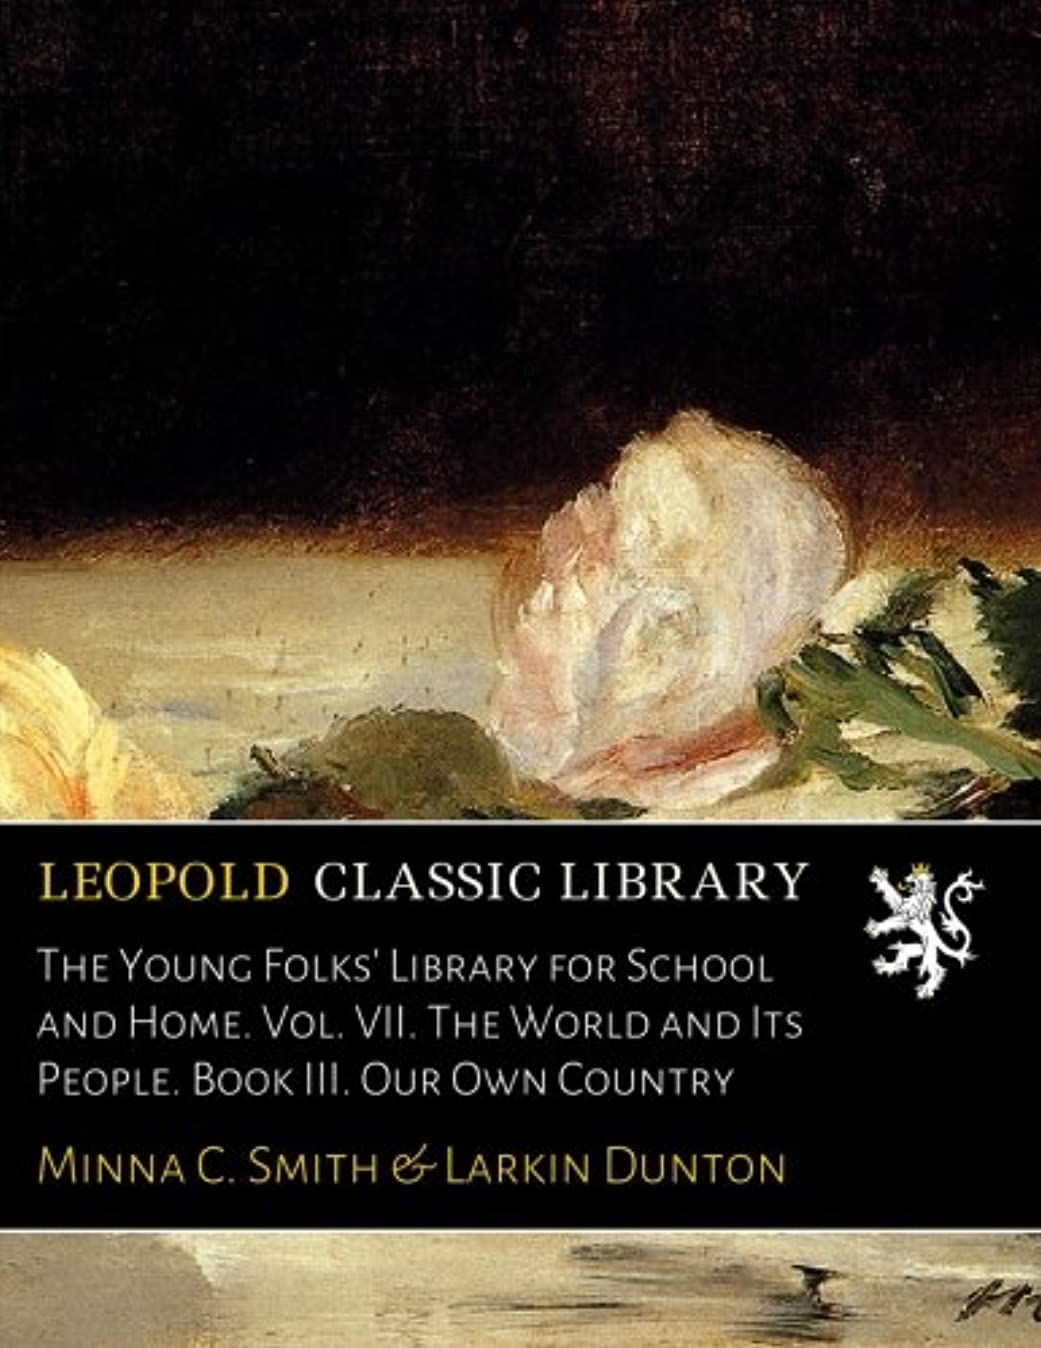 鍔サワーエロチックThe Young Folks' Library for School and Home. Vol. VII. The World and Its People. Book III. Our Own Country